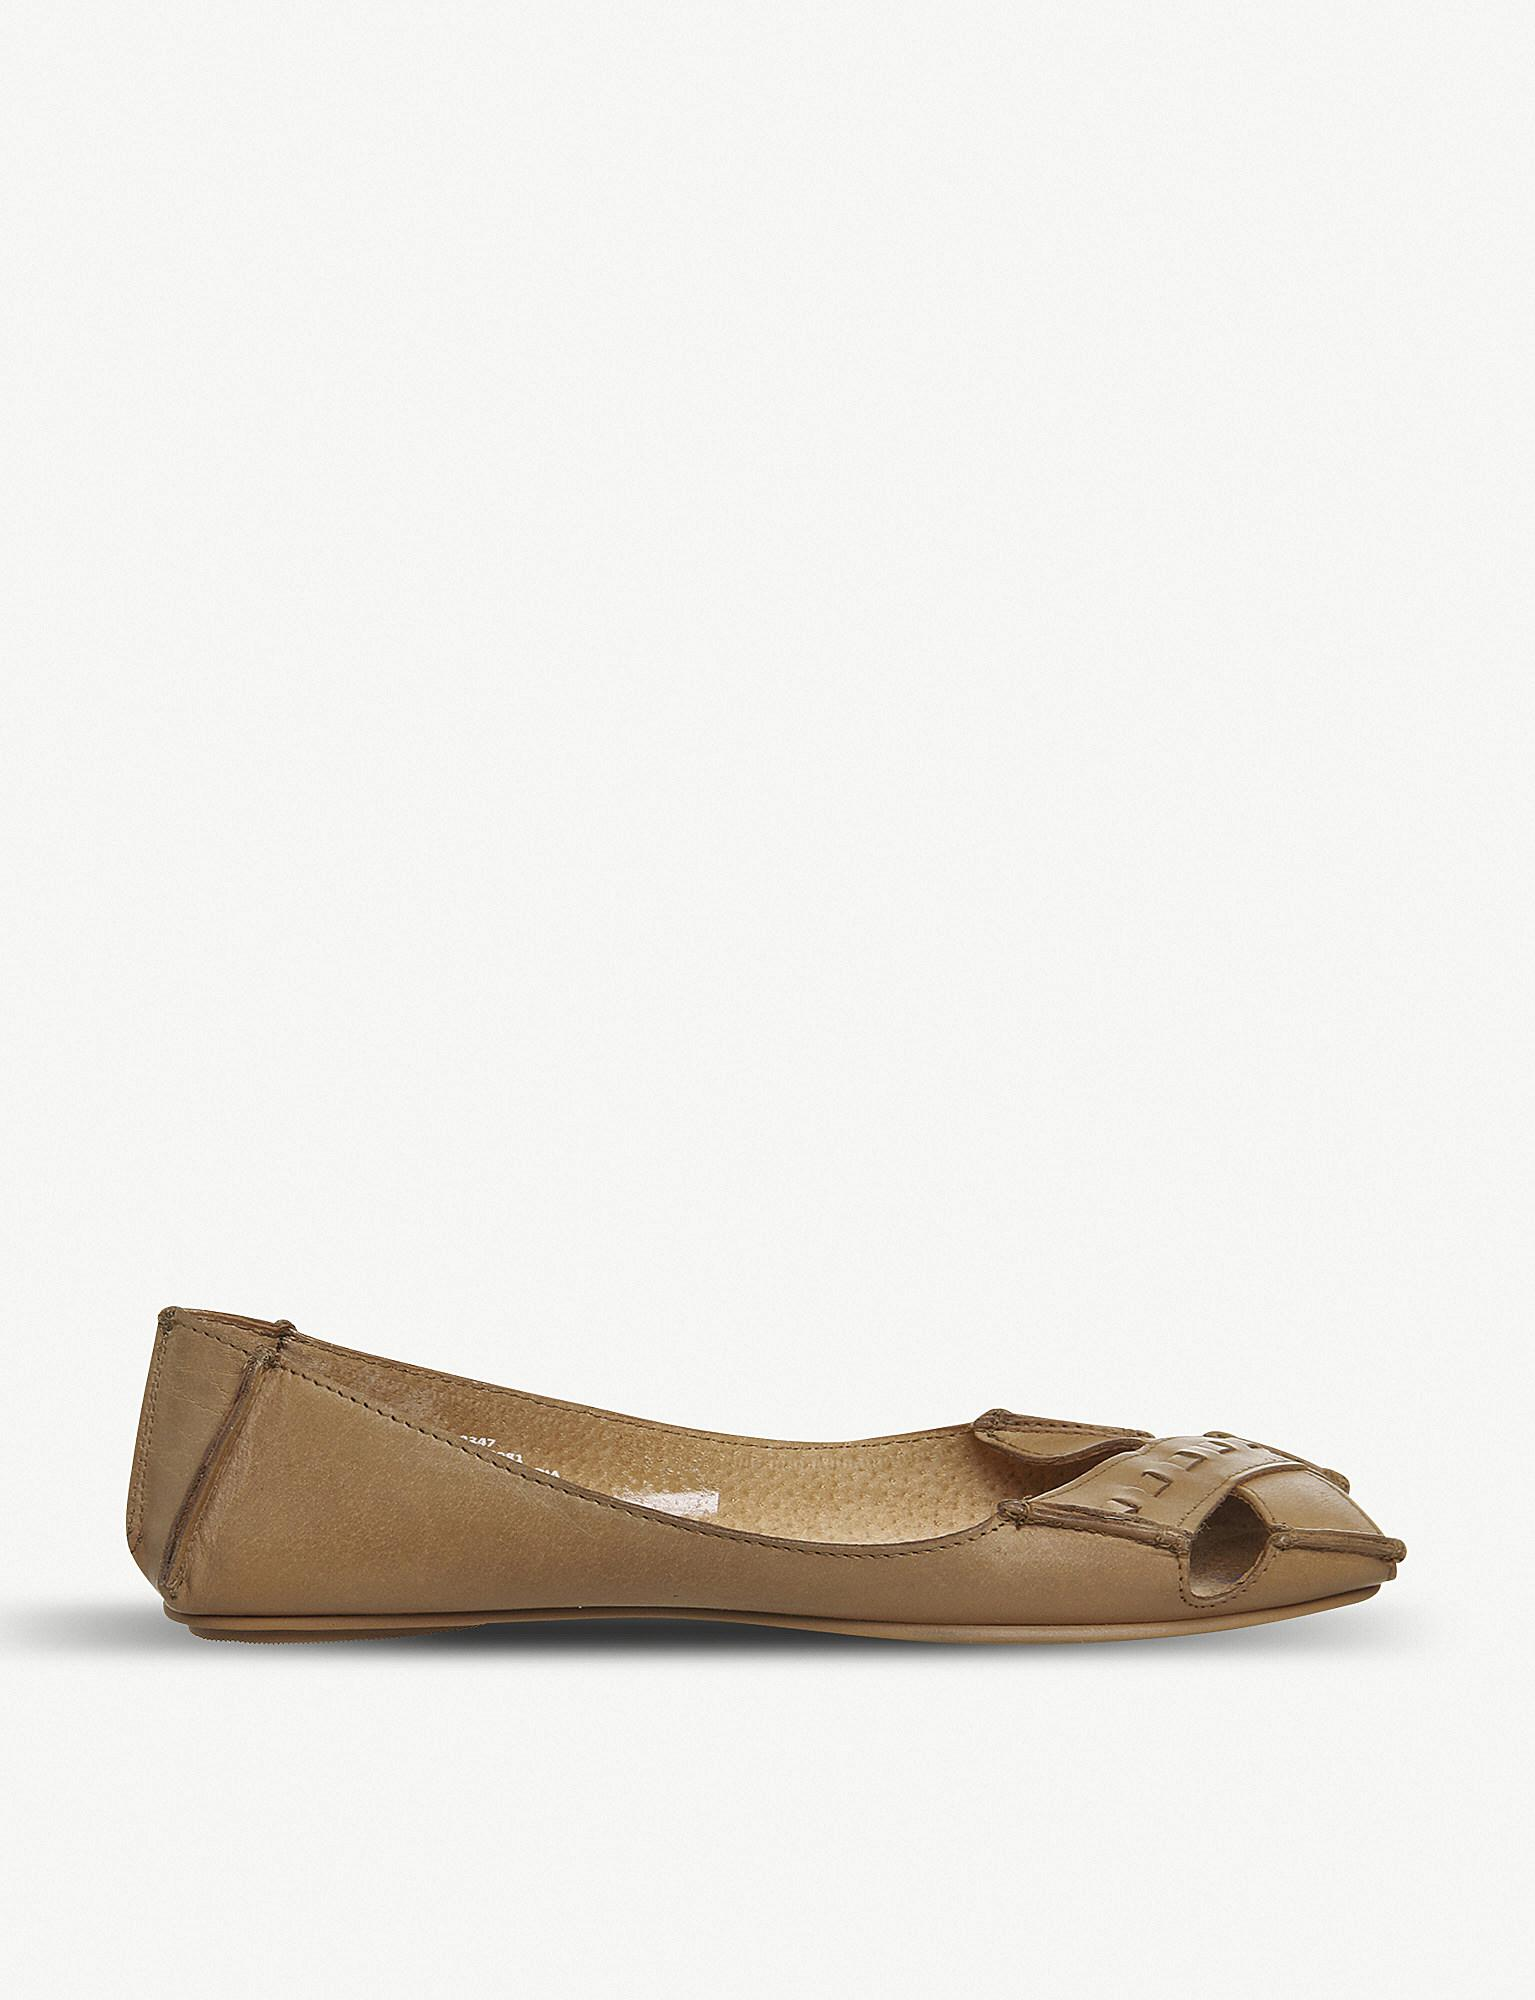 75e25de78435 Lyst - Office Face To Face Leather Peep-toe Flats in Brown